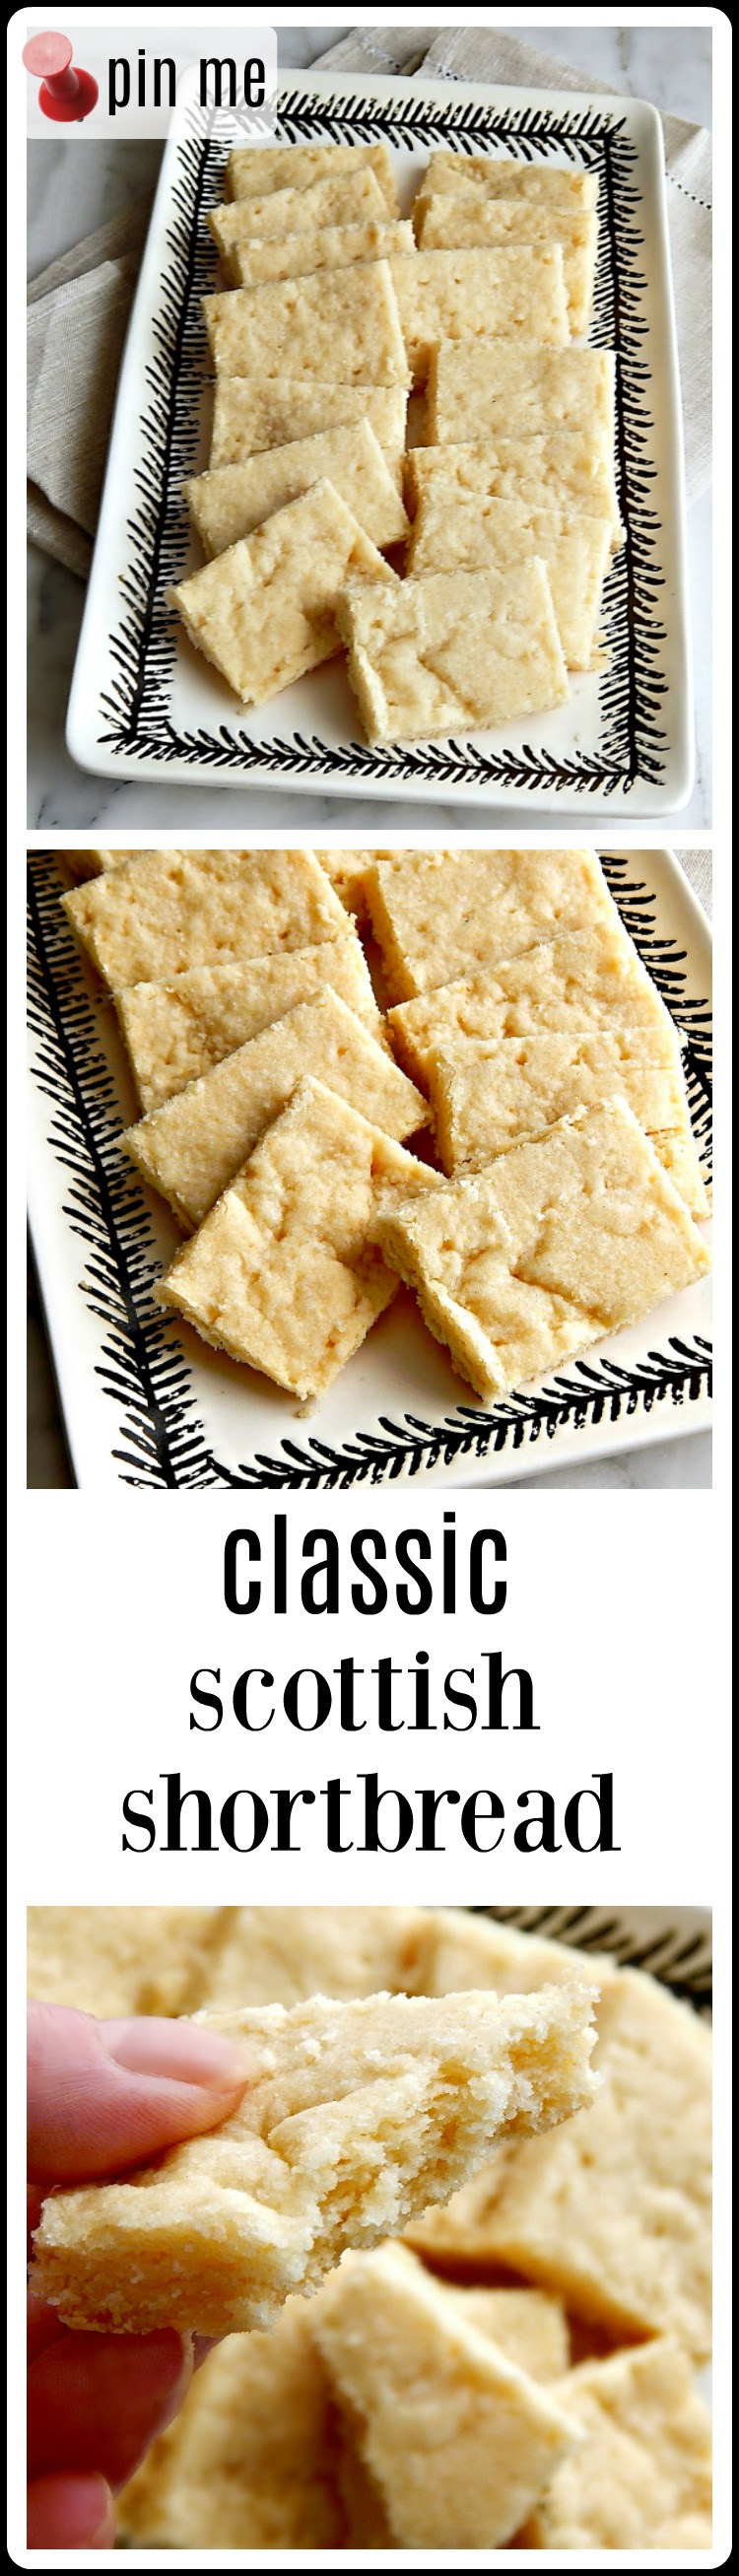 I love Classic Scottish Shortbread. Simple buttery melt in your mouth Shortbread. Ok, it's no Chocolate Chip Cookie, but other than that Classic Scottish Shortbread is everything. This recipe is so good, it will make a Scotsman Weep.